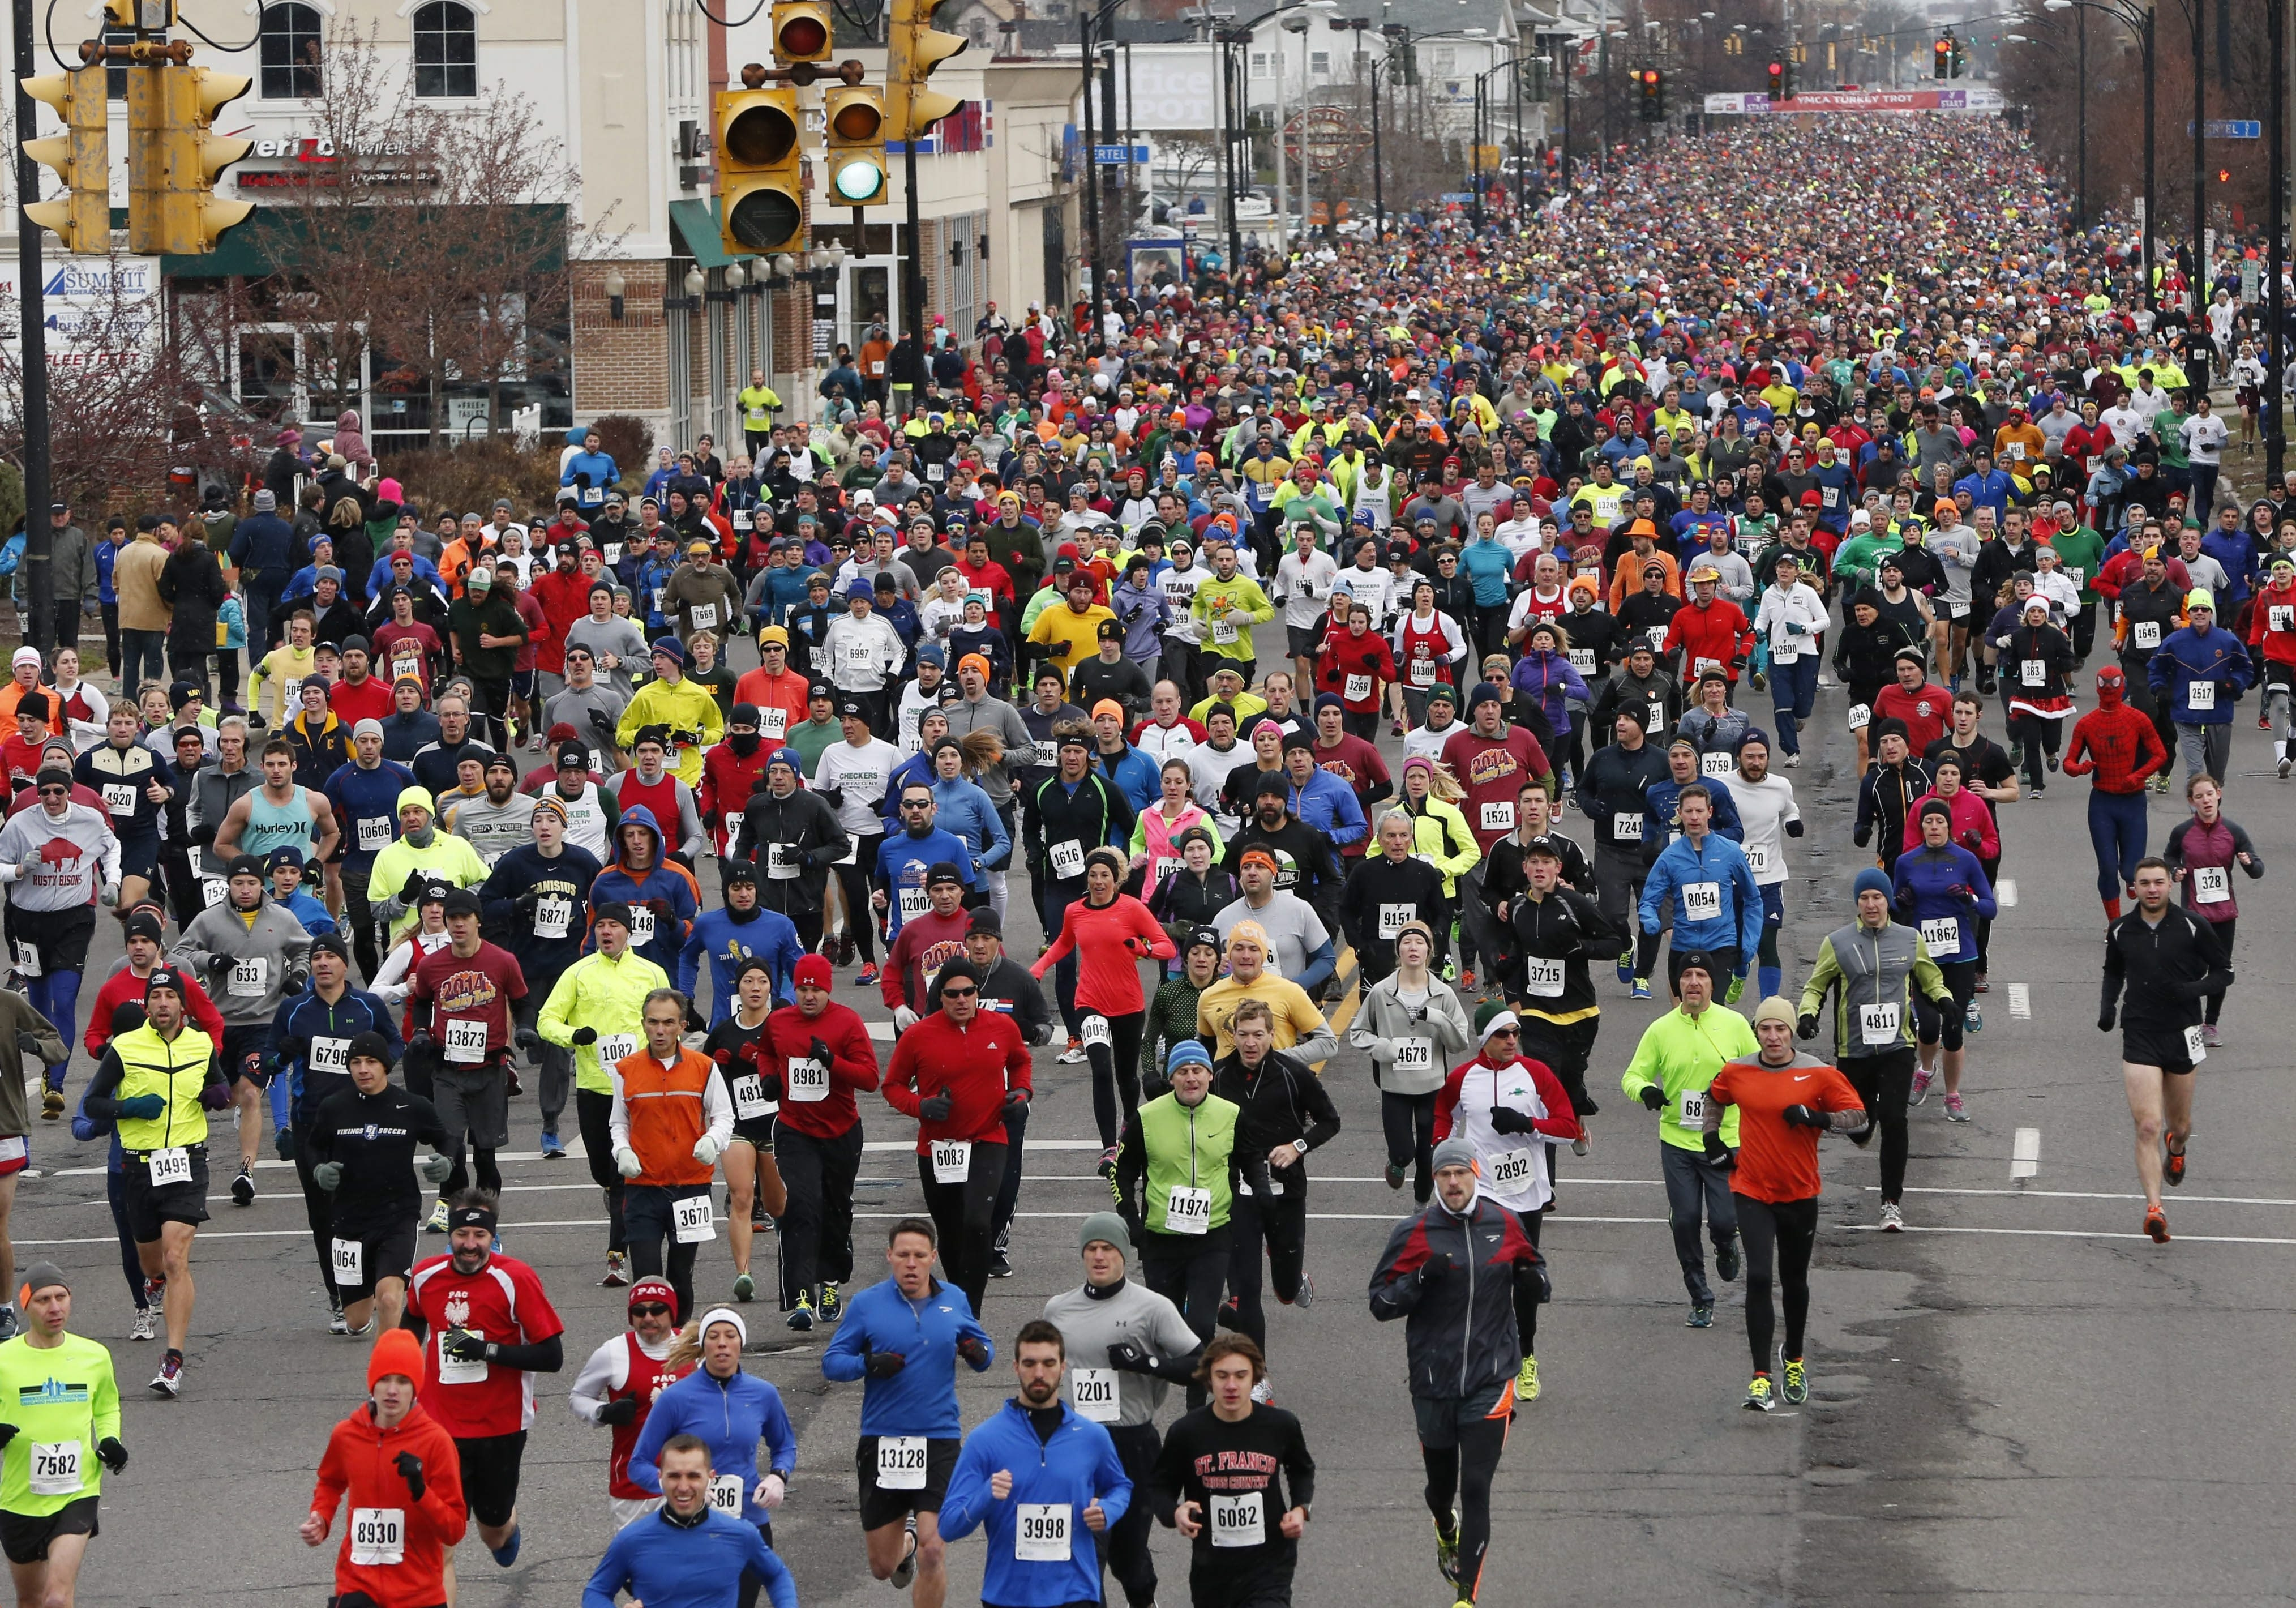 Runners leave the starting line on Delaware Avenue for the 119th annual YMCA Turkey Trot, Thursday, Nov. 27, 2014.  (Derek Gee/Buffalo News)